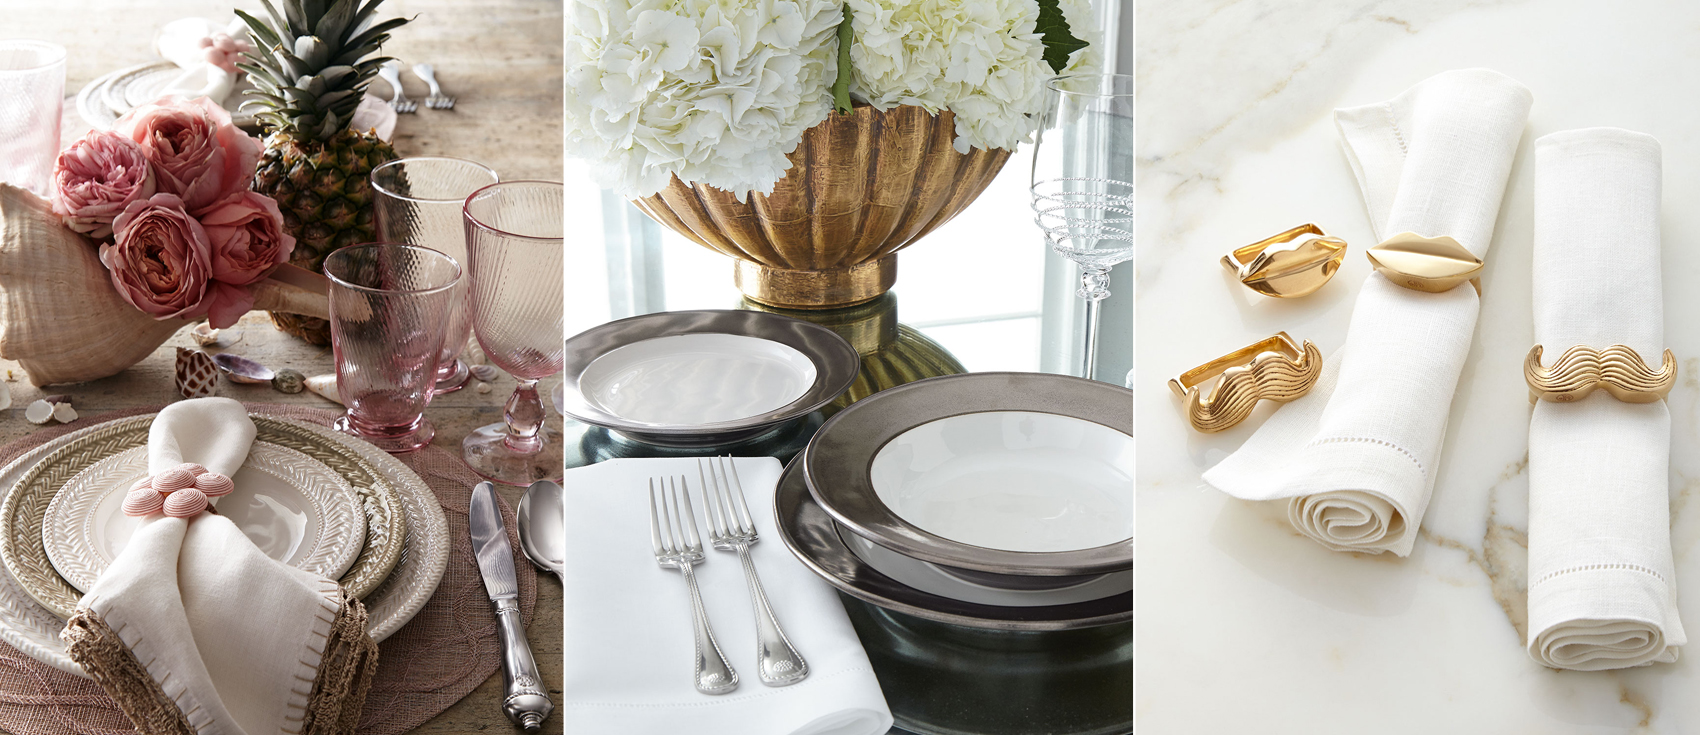 Tabletop, Dinnerware & Serveware